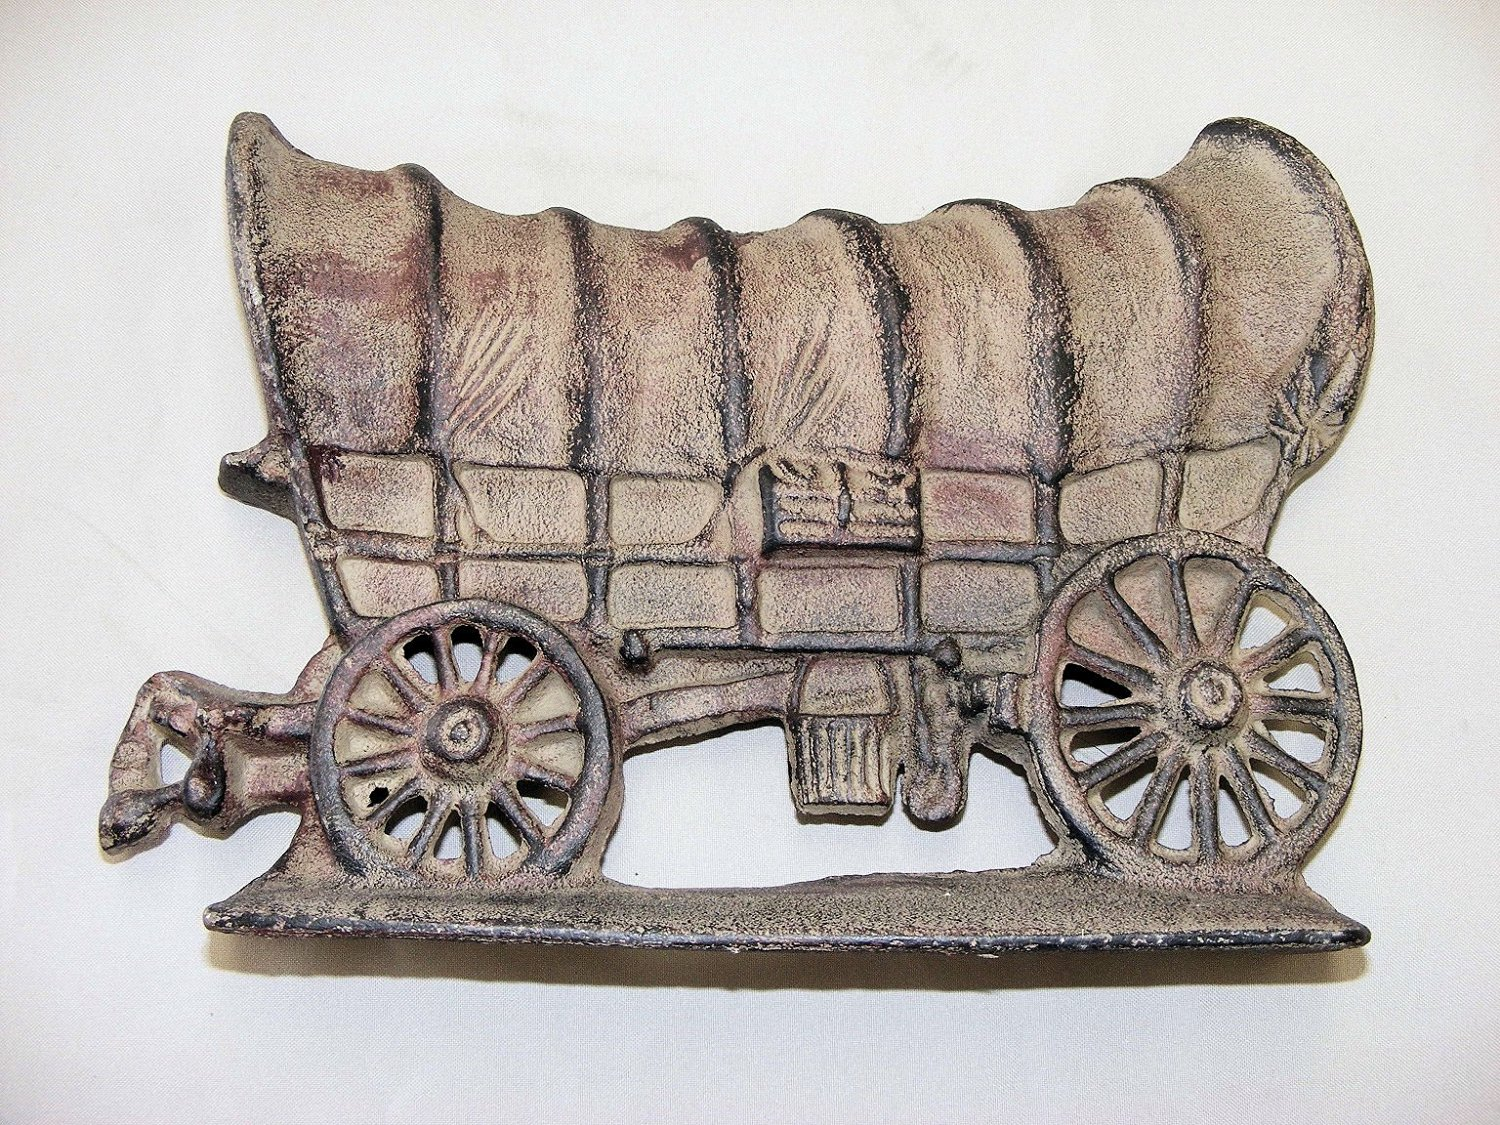 """ABC Products"" - Heavy-Heavy Cast Iron - Large Door Stop Wedge - 12 Long"" x 8-1/2"" Tall - Primitive Cover Wagon Design - (Light Rustic Finish)"